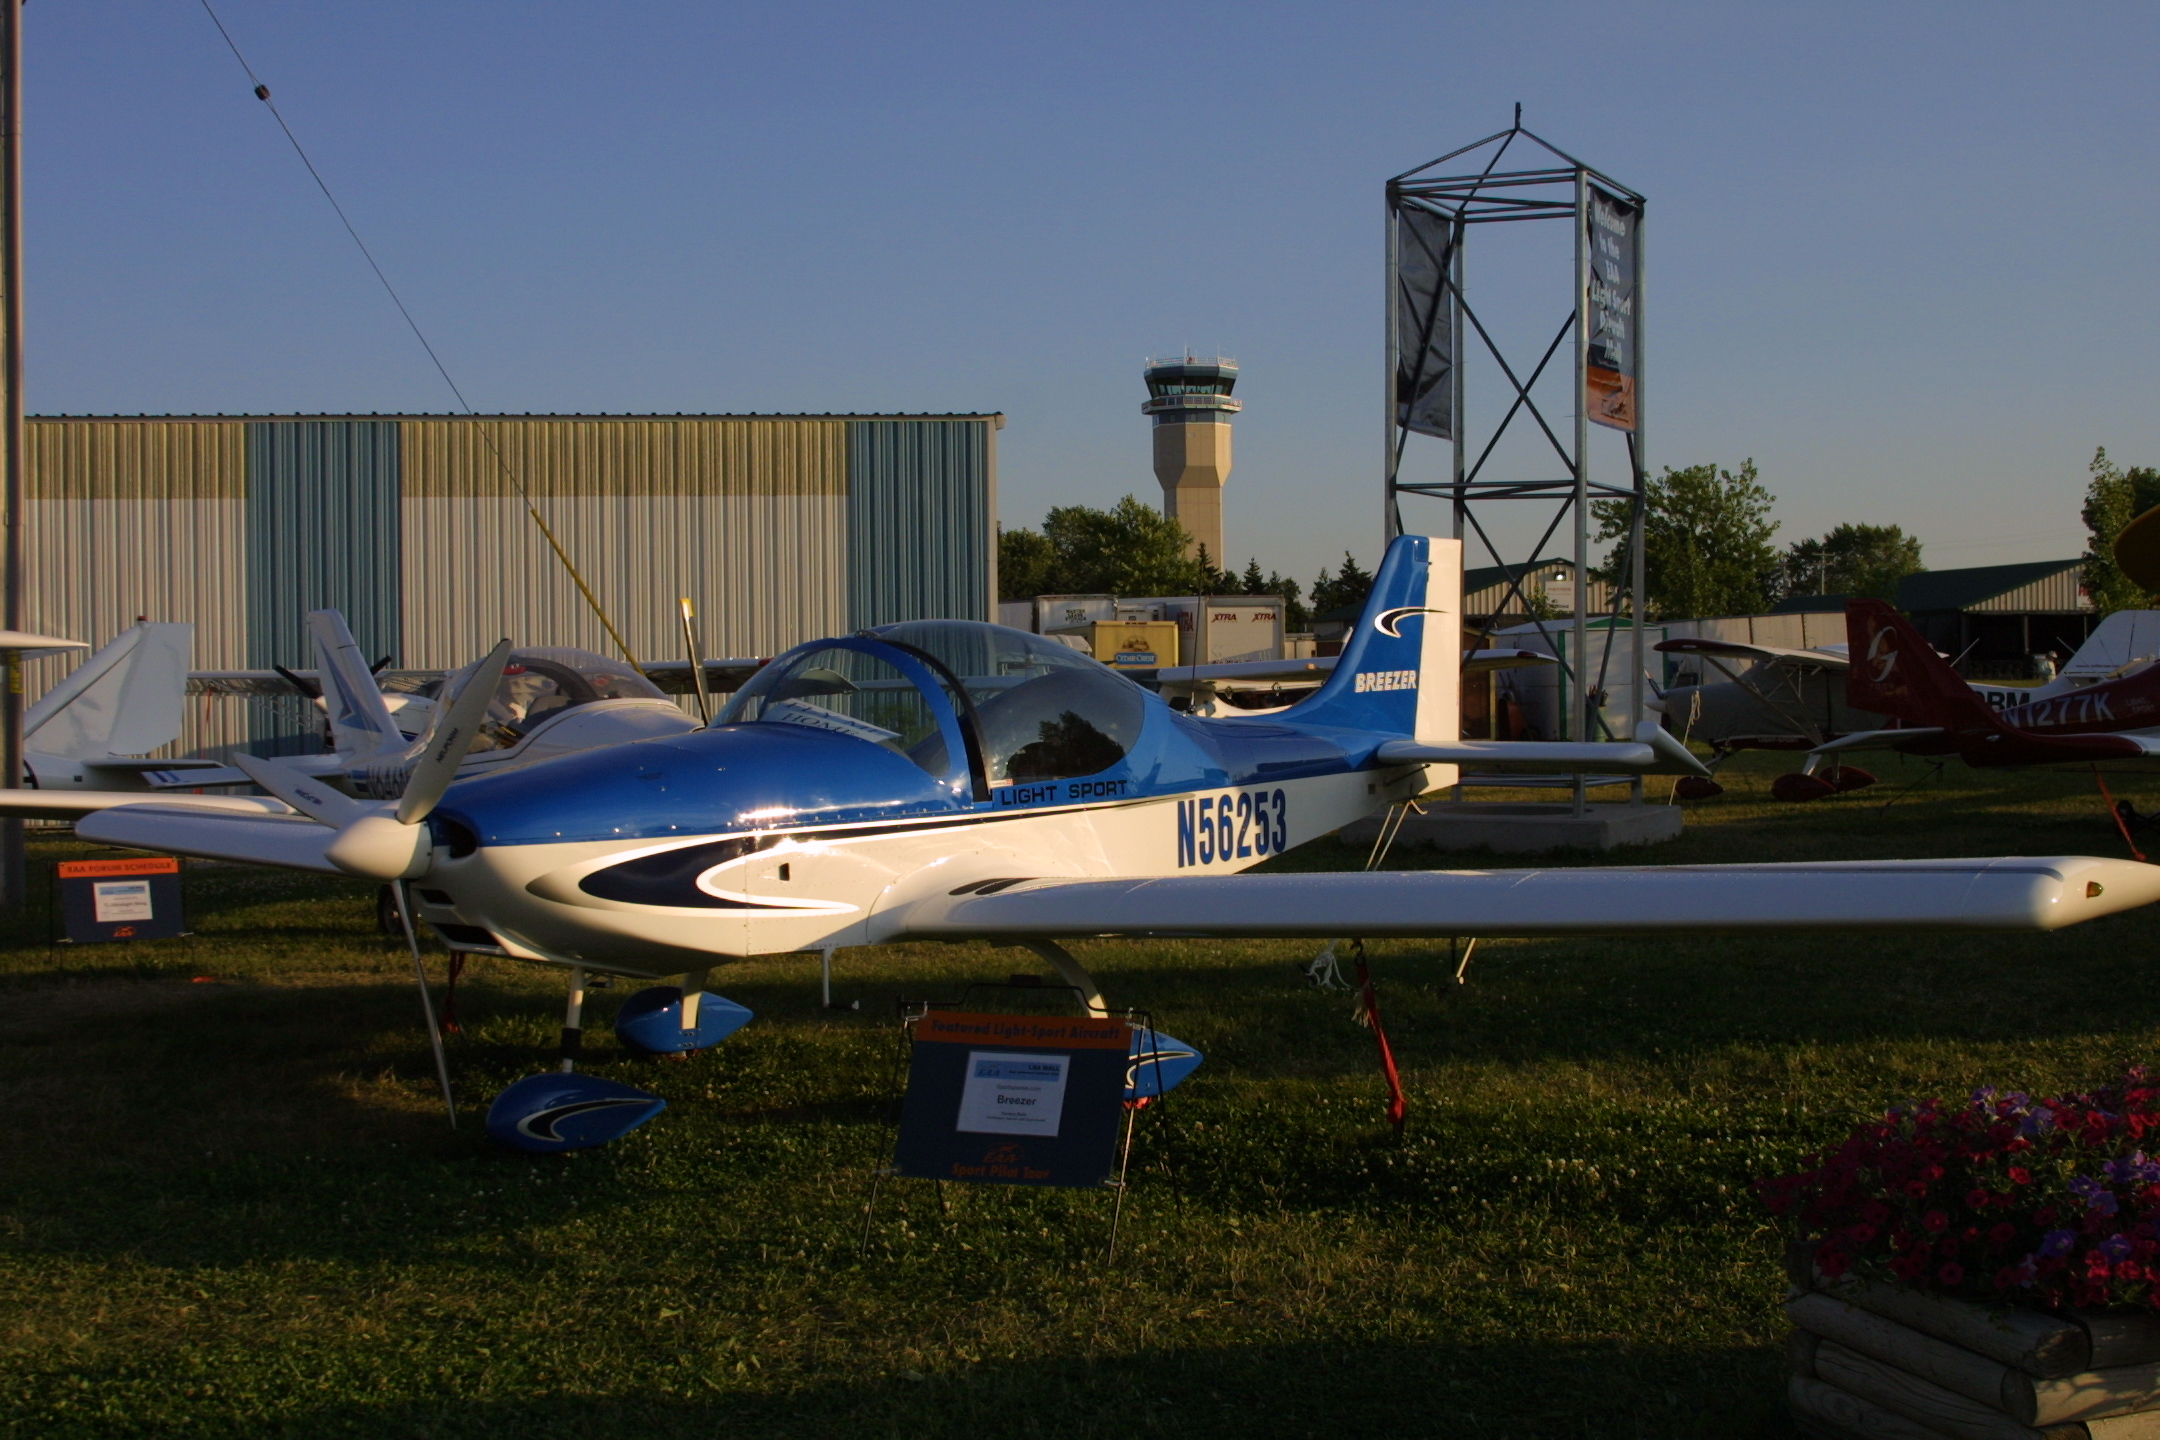 Breezer II, Breezer Aircraft, Breezer II light sport aircraft